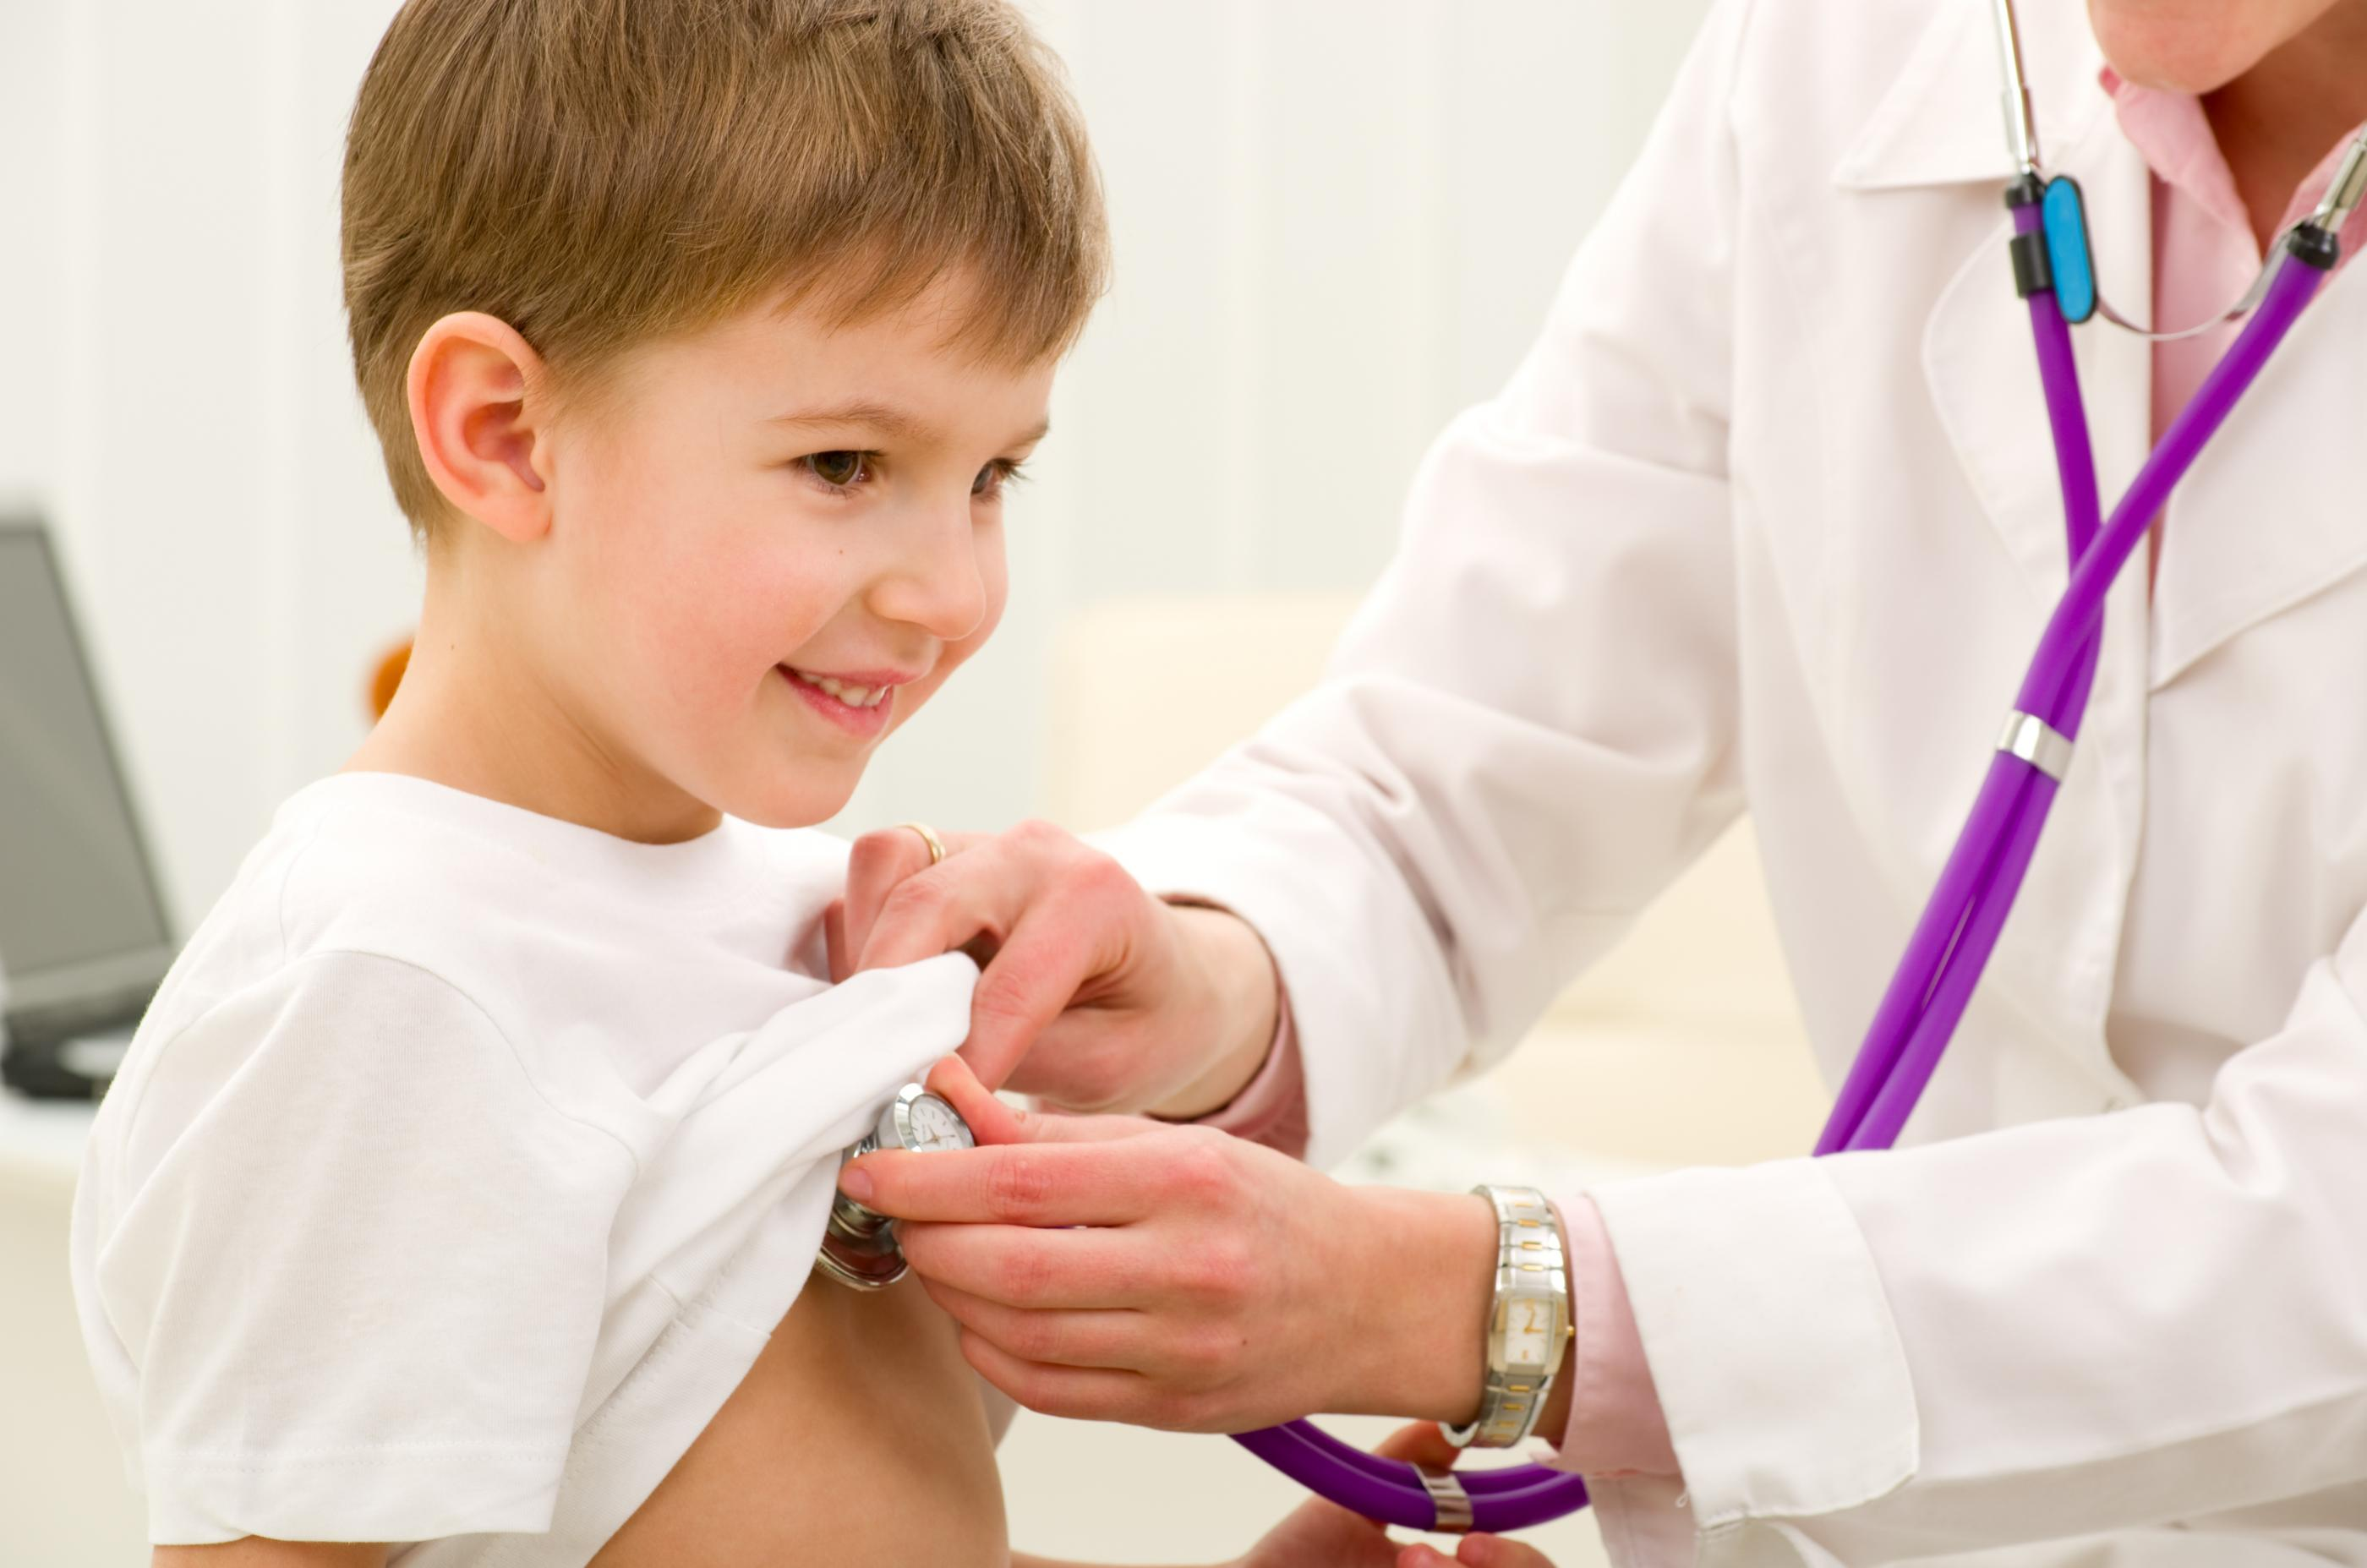 10 Detoxification And Constipation Remedies For Children